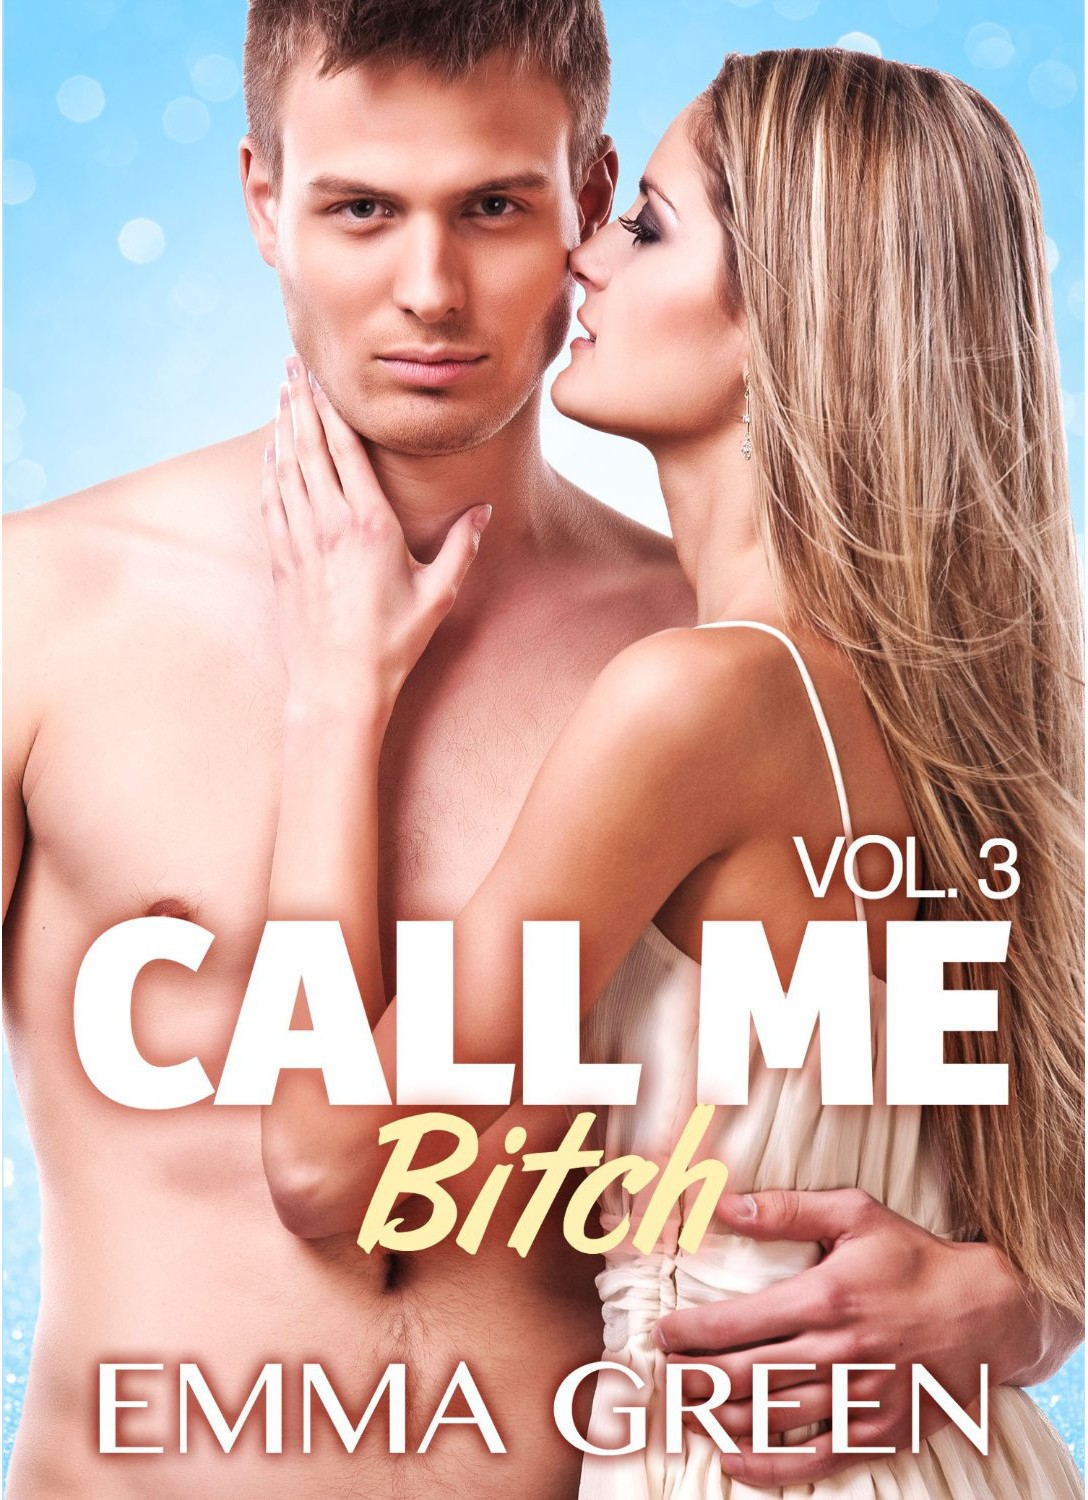 Call me Bitch - volume 1 à 3